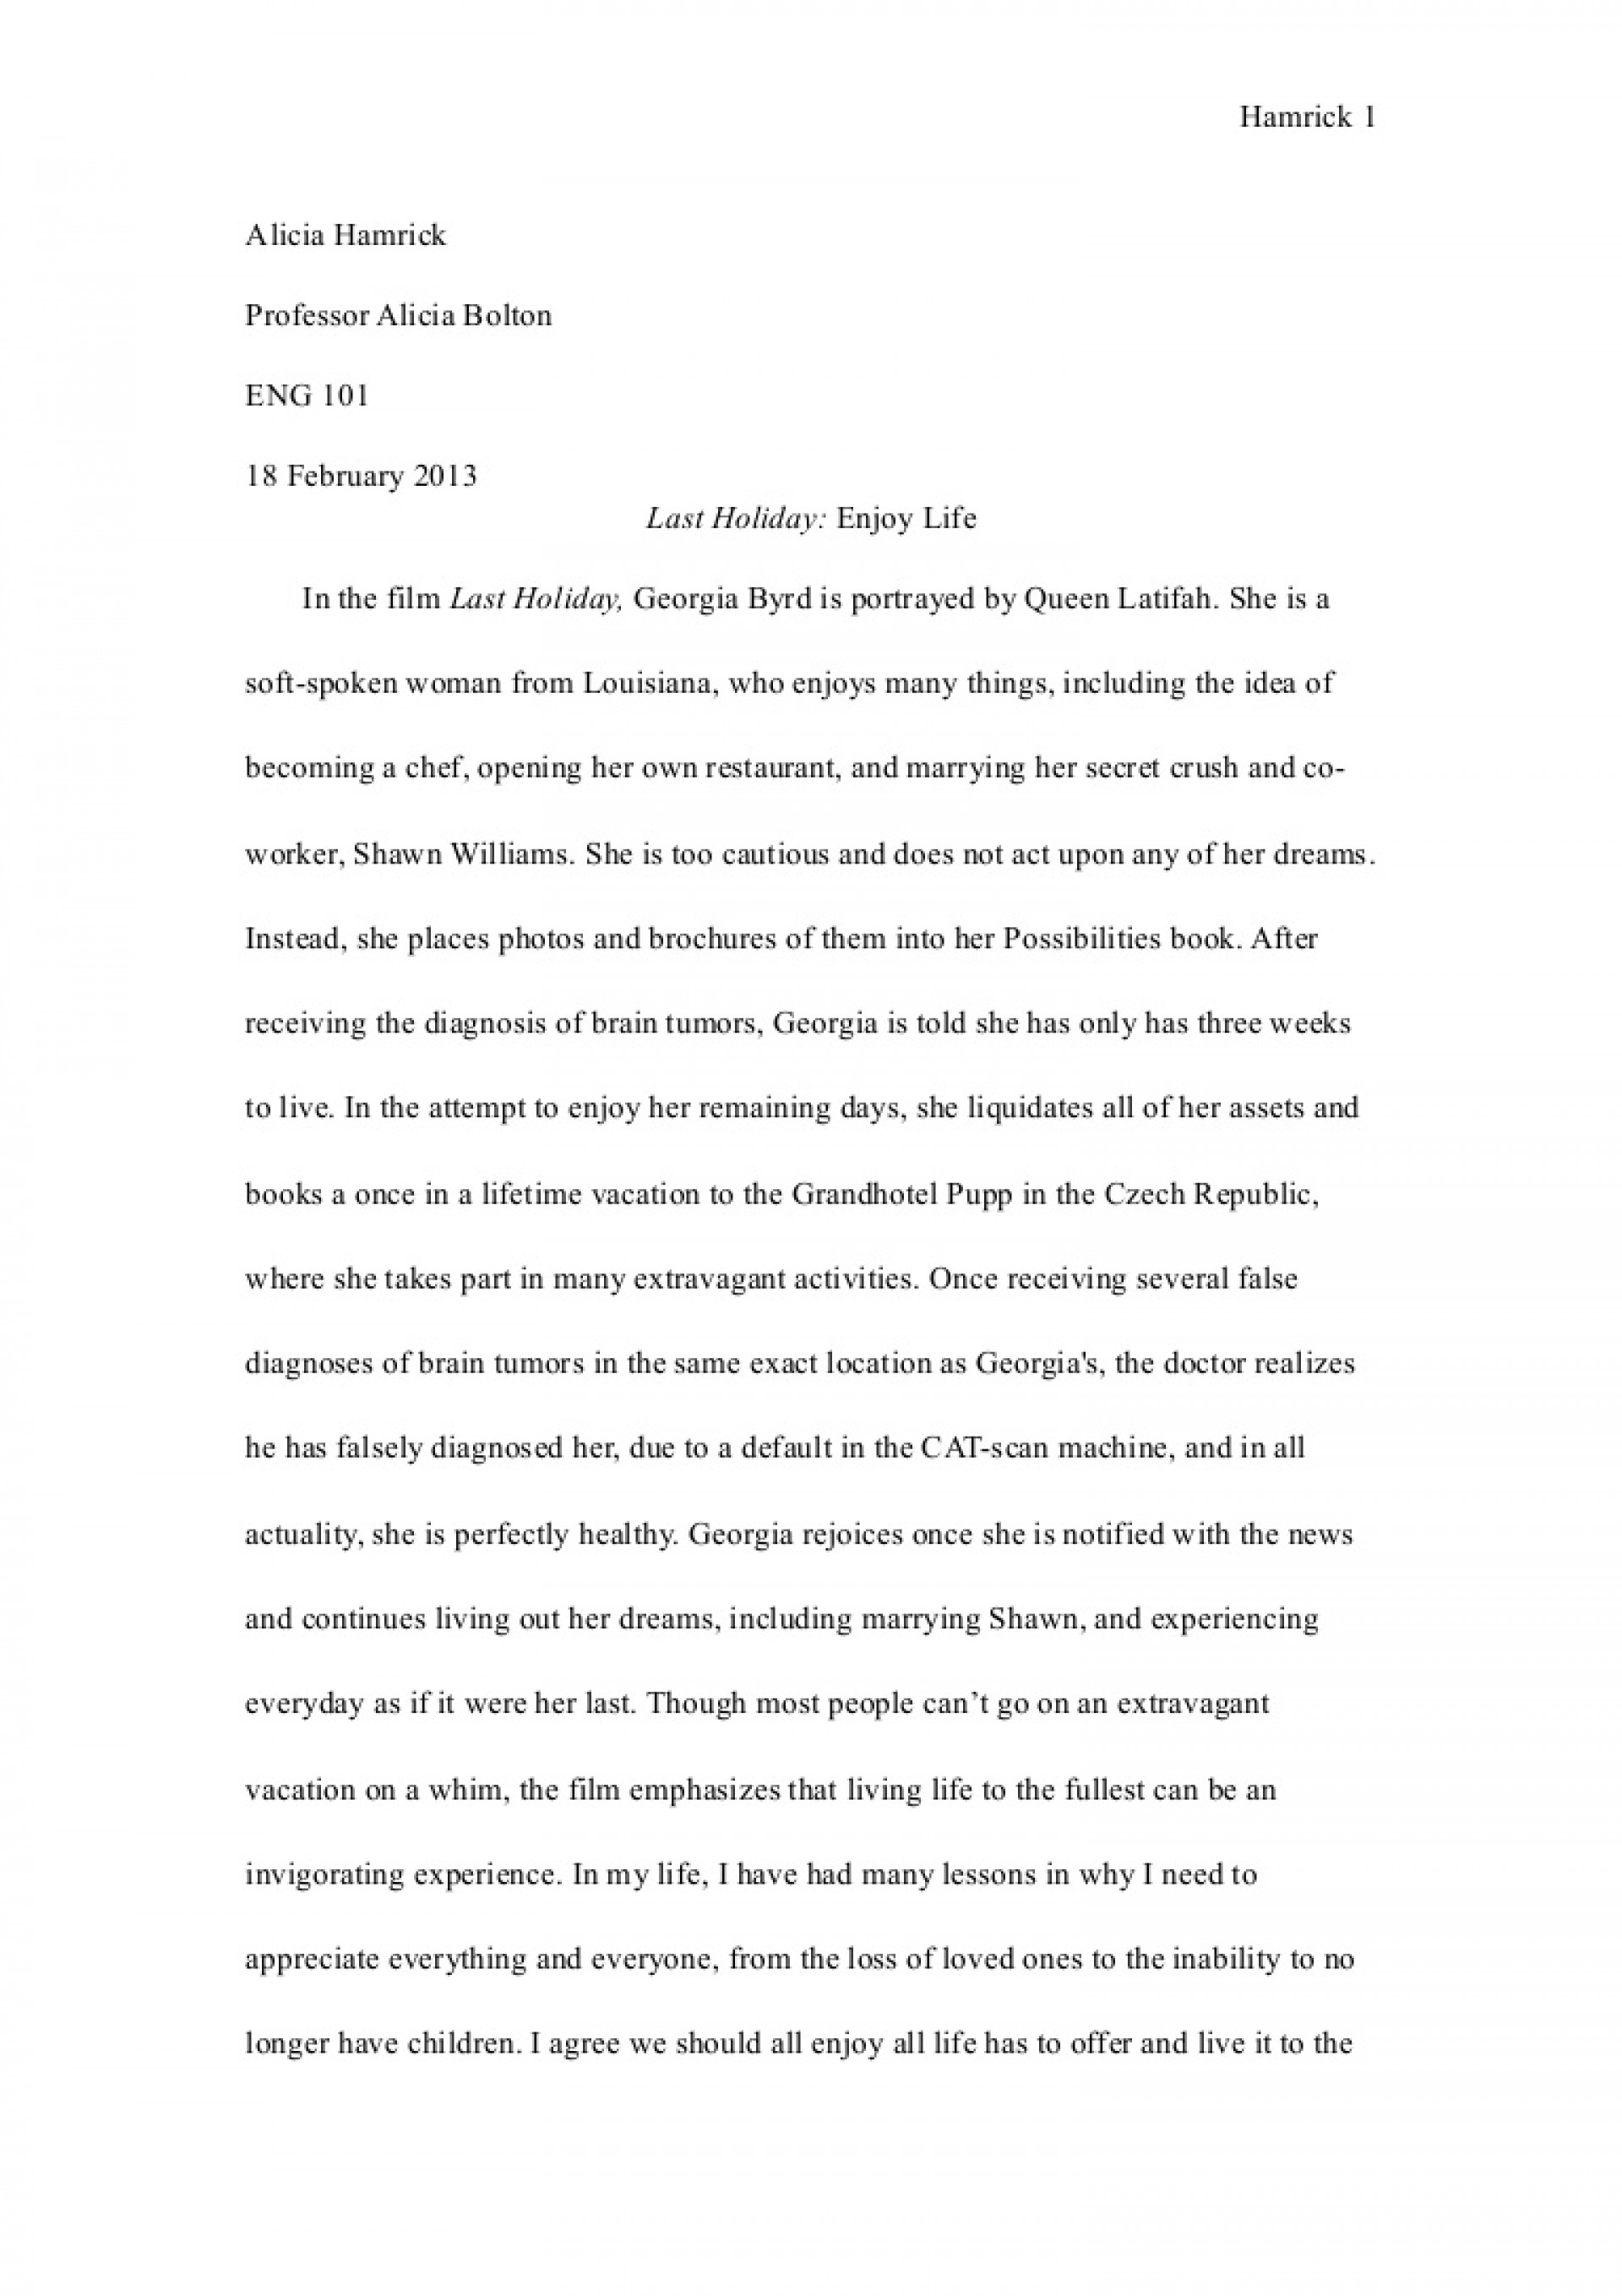 018 Eng101essay1revisied Phpapp02 Thumbnail Essay Example Vs Breathtaking Paper Term Personal Research What Is The Difference Persuasive 1920